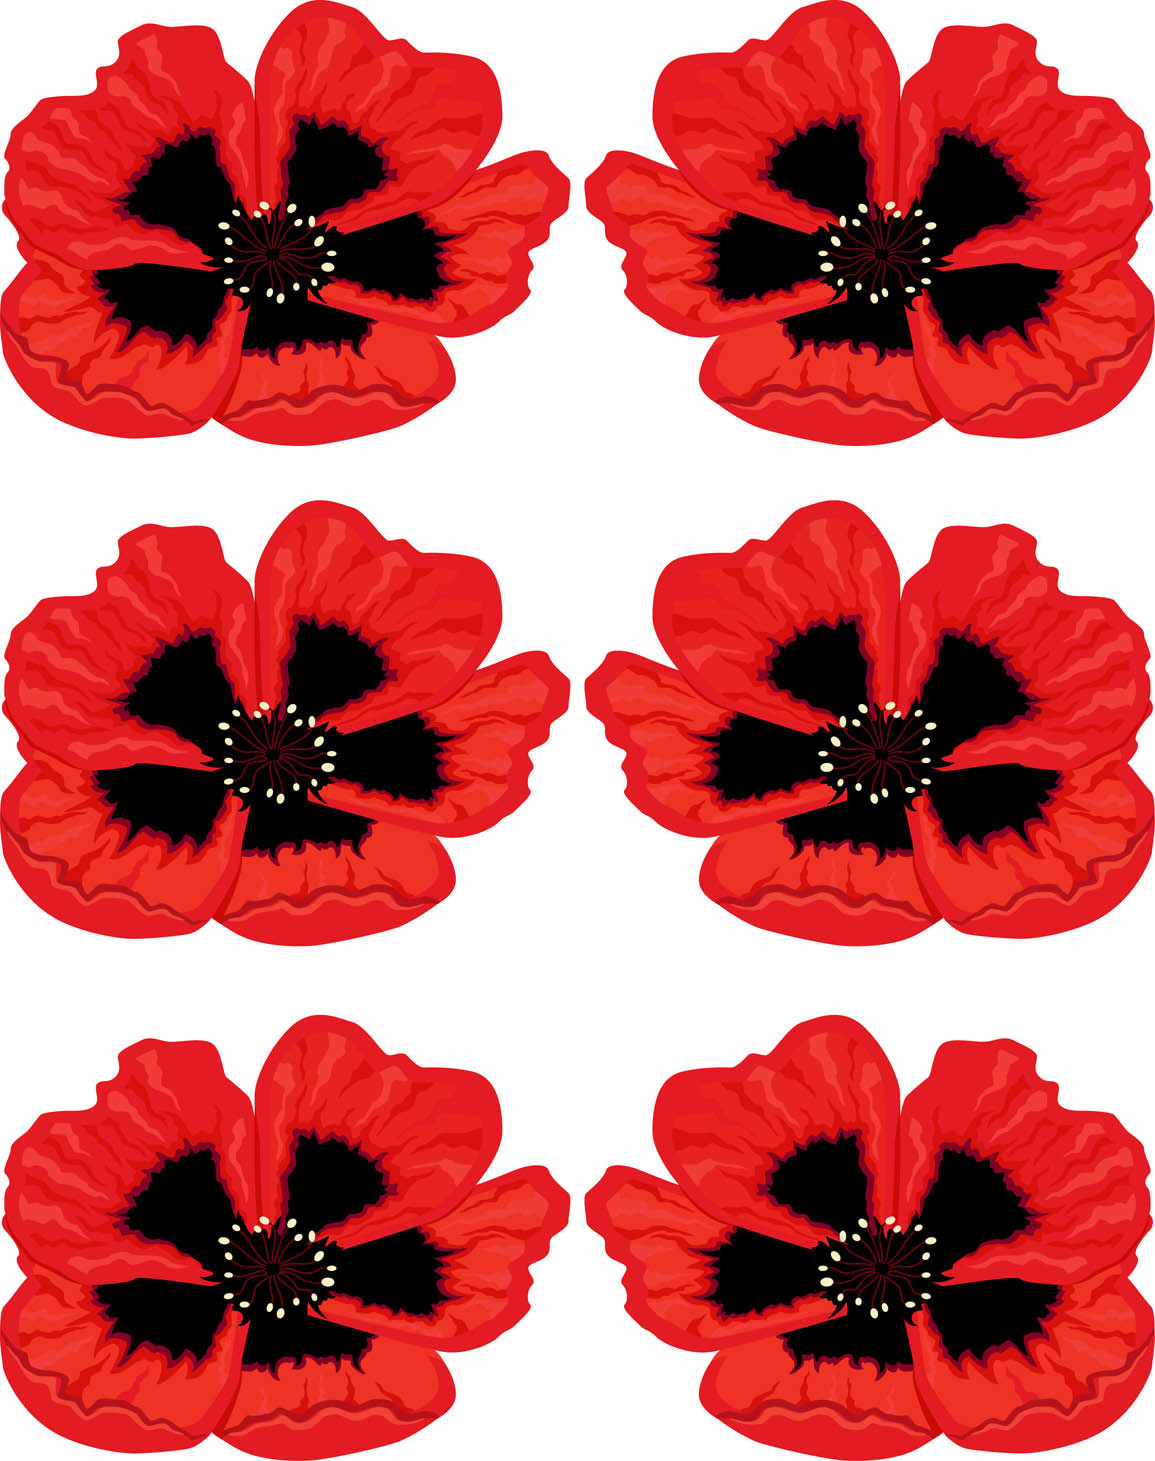 Candid image intended for poppies printable